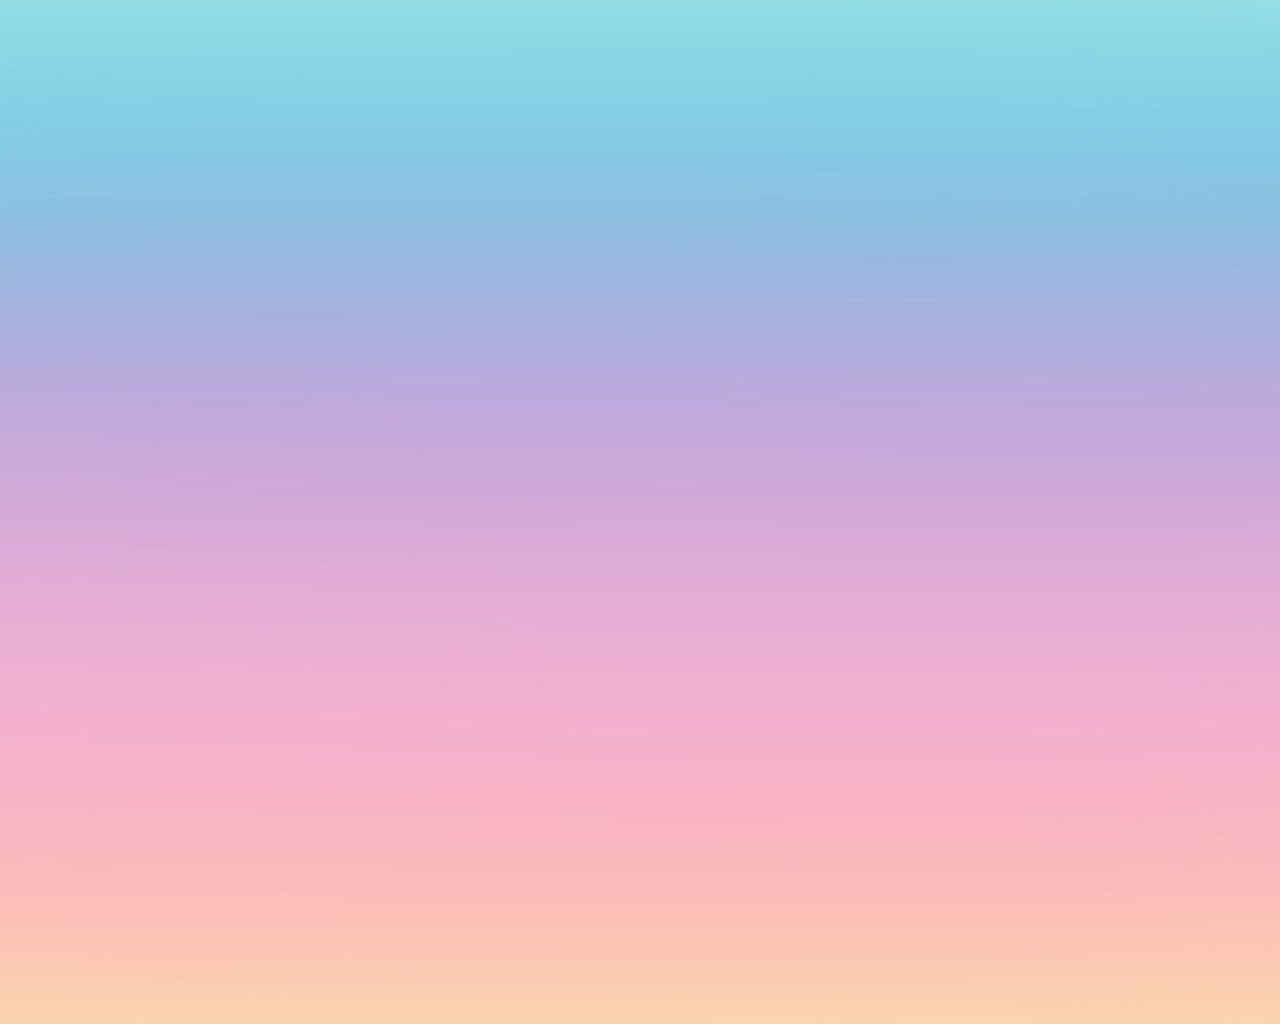 Free Download Pastel Aesthetic Wallpapers Top Pastel Aesthetic 1280x1477 For Your Desktop Mobile Tablet Explore 40 Pastel Aesthetic Wallpaper Pastel Aesthetic Wallpaper Pastel Backgrounds Pastel Wallpaper